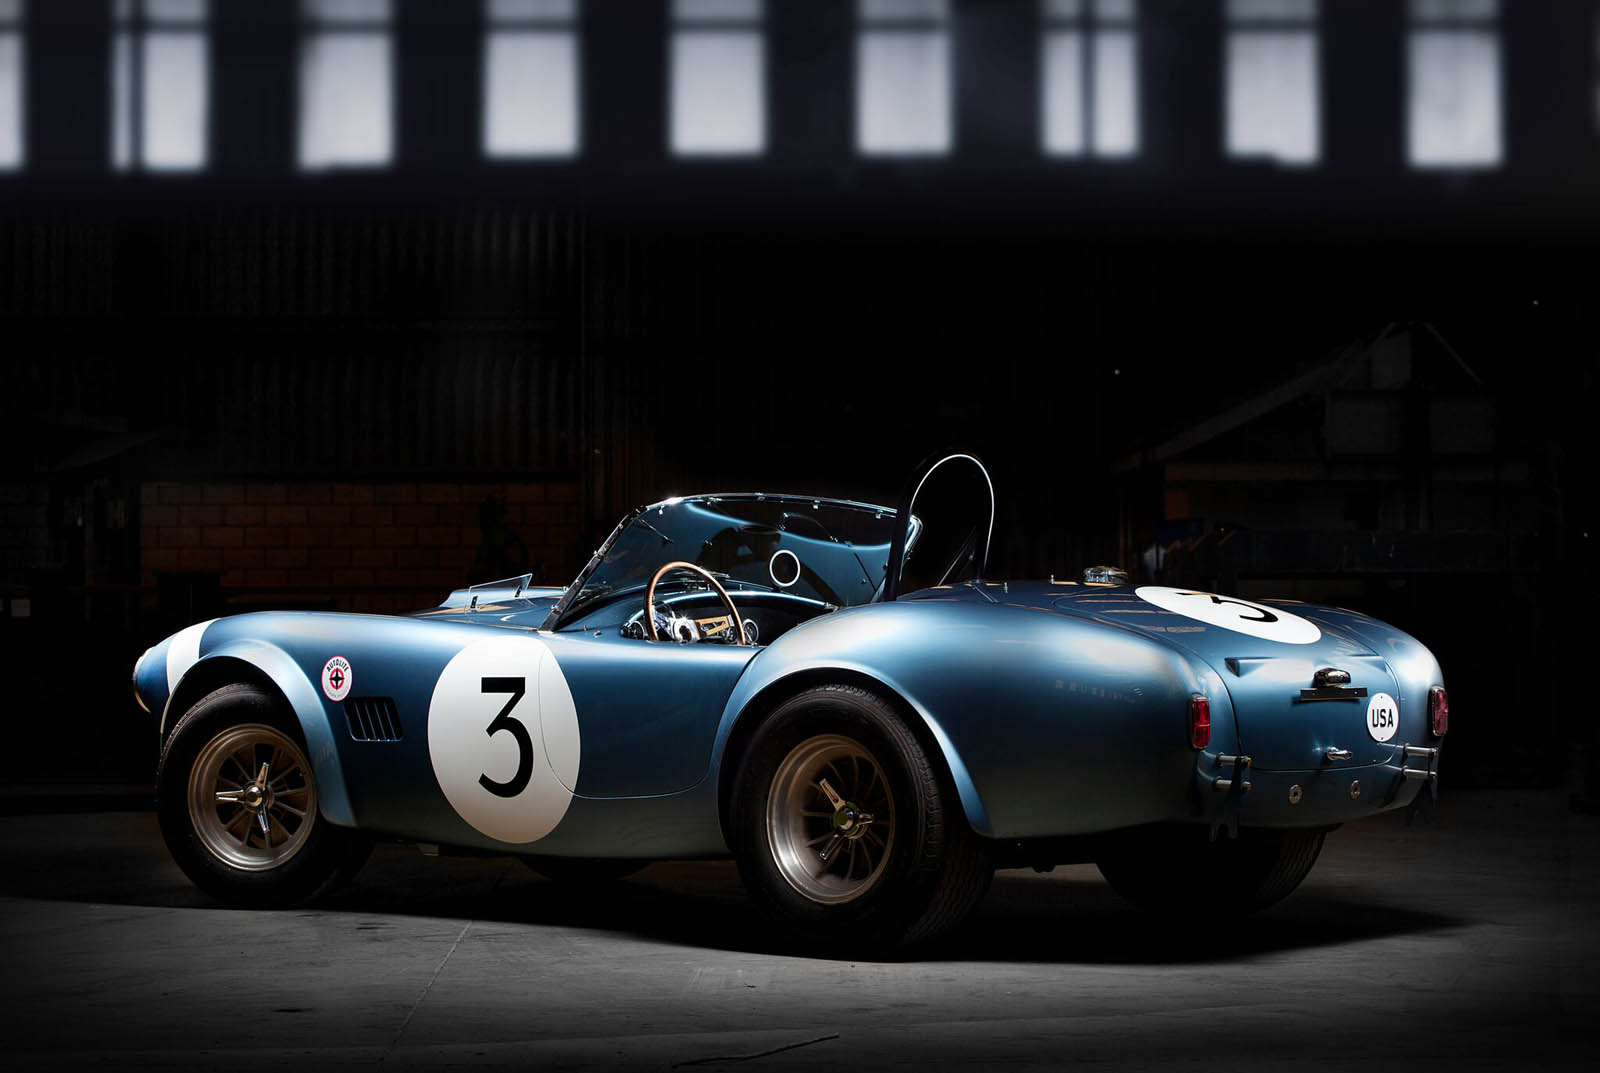 shelby-cobra-bondurant-edition-03